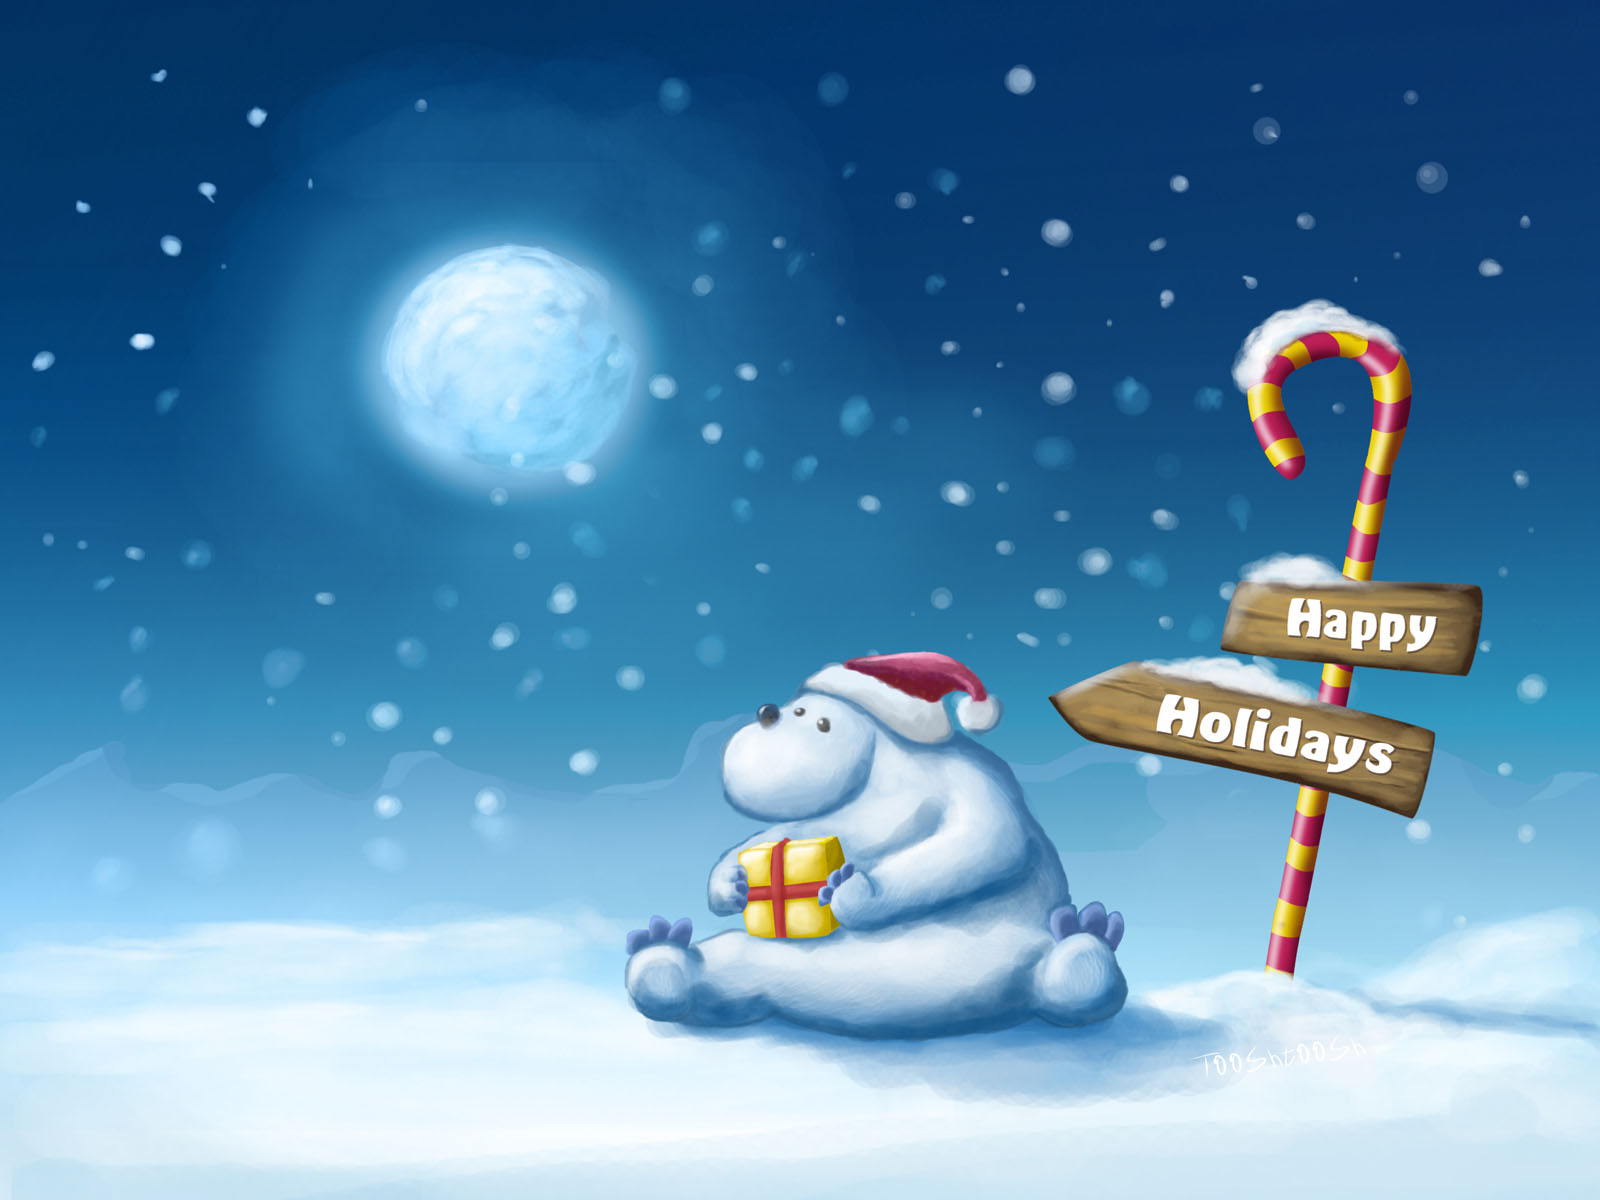 Collection of Christmas Images For Desktop Background on HDWallpapers